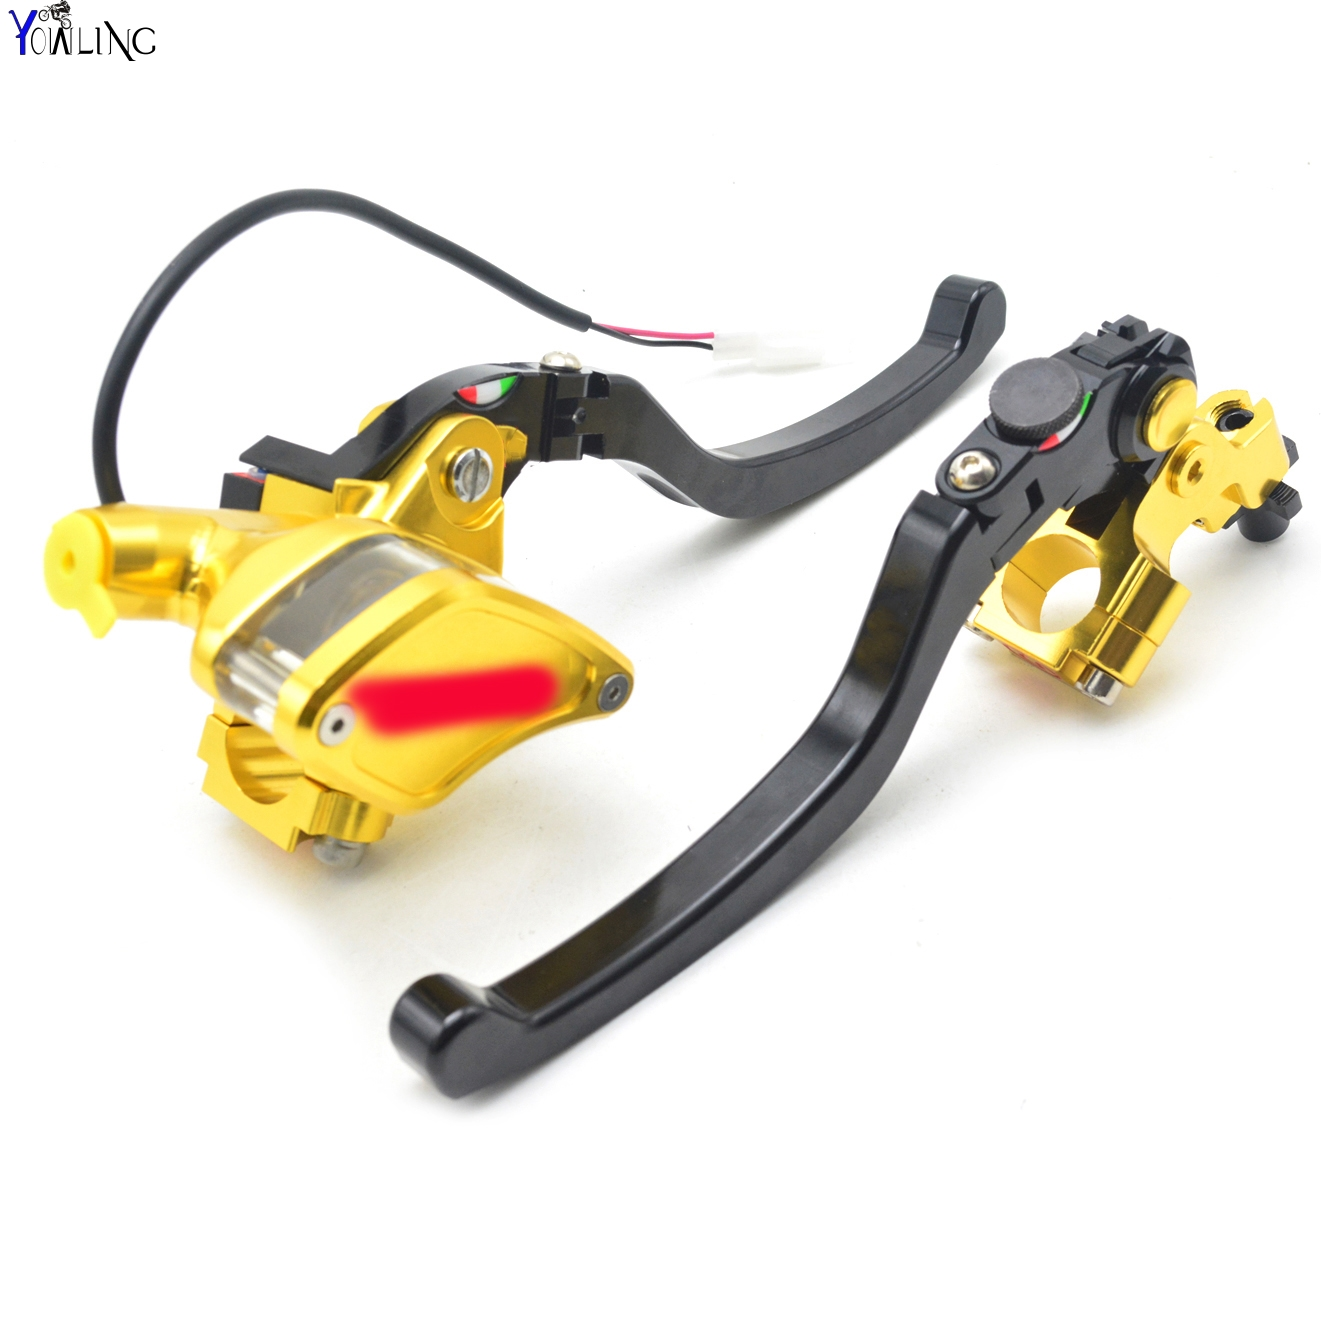 Motorcycle Cable Clutch Hydraulic brake clutch pump master cylinder handle Lever with electric contactor for stoplight with logo motorcycle front brake clutch master cylinder hydraulic pump lever for bmw f650gs f800gs f800r f700gs s1000rr s1000r k1200s